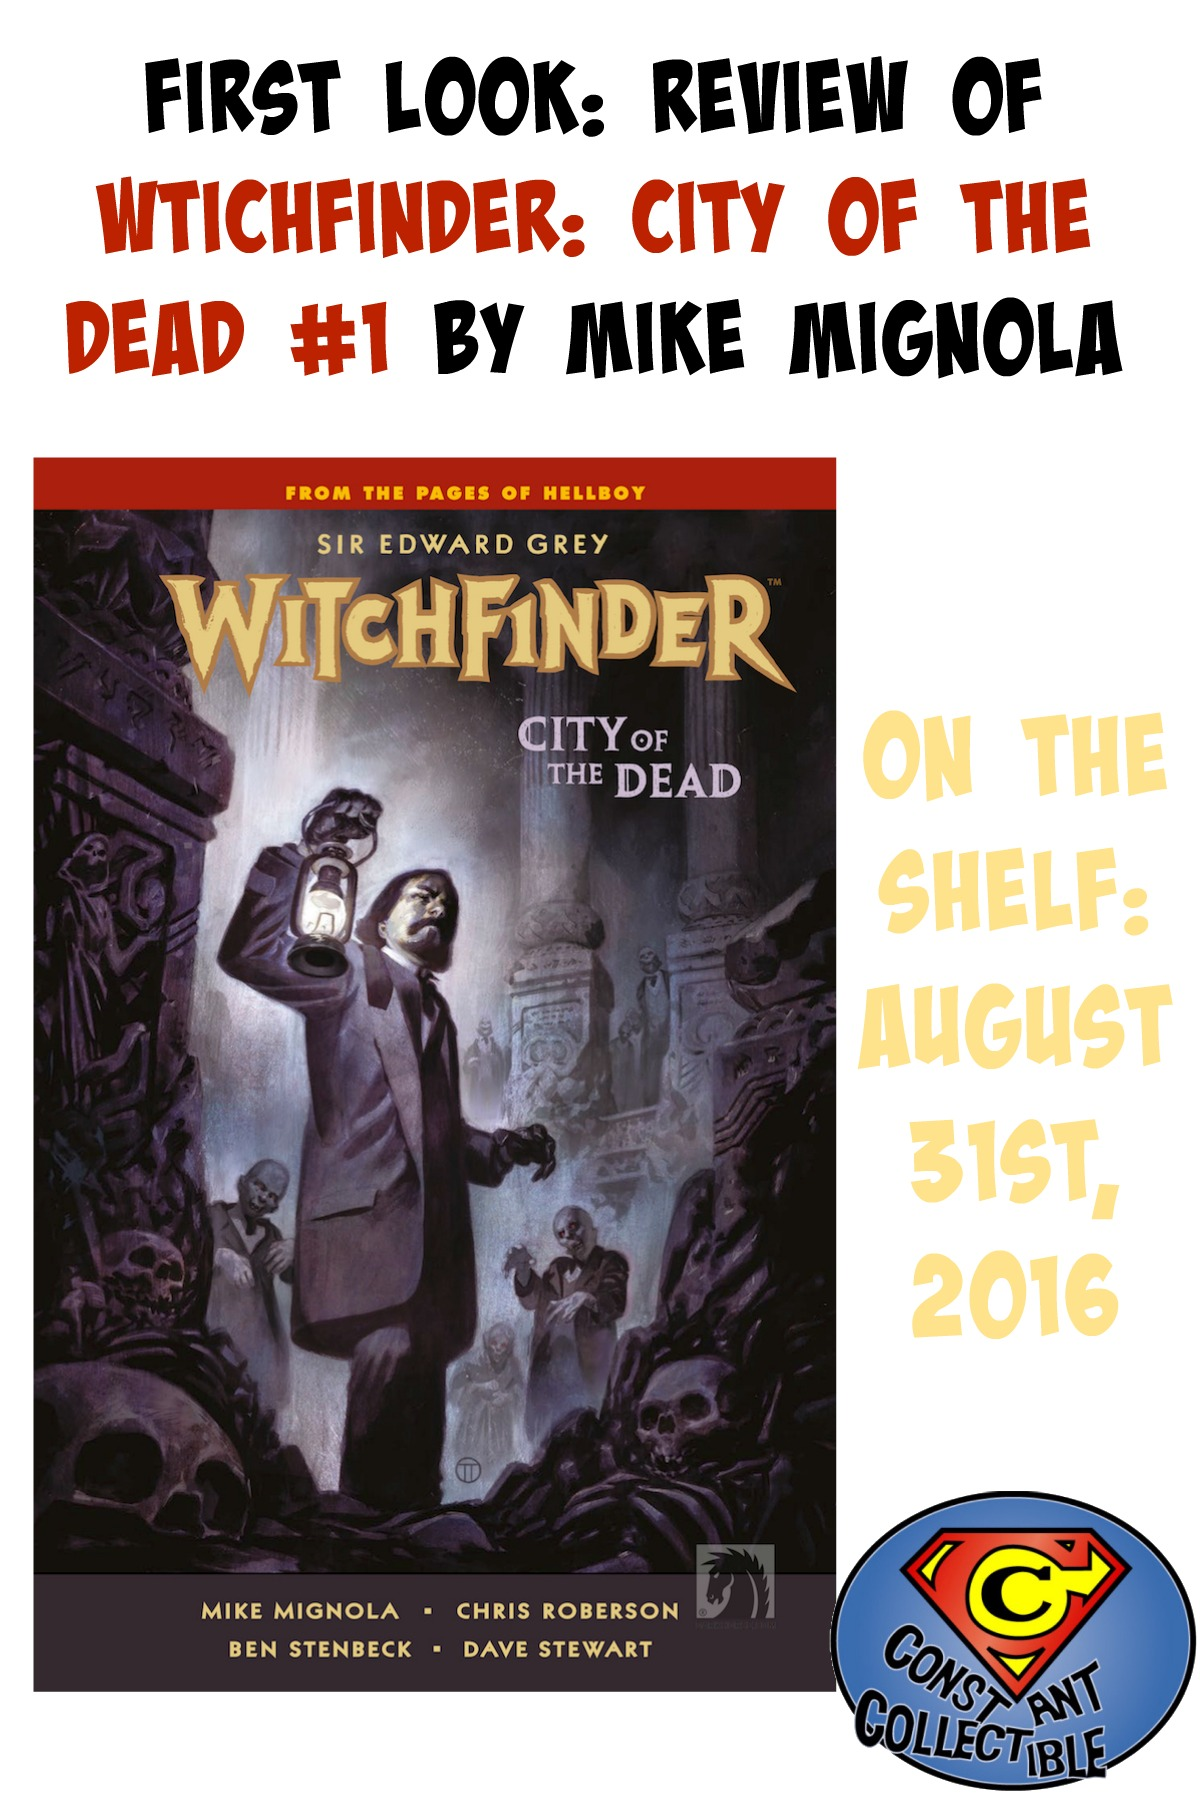 First Look: Review of Witchfinder: City of the Dead #1 by Mike Mignola